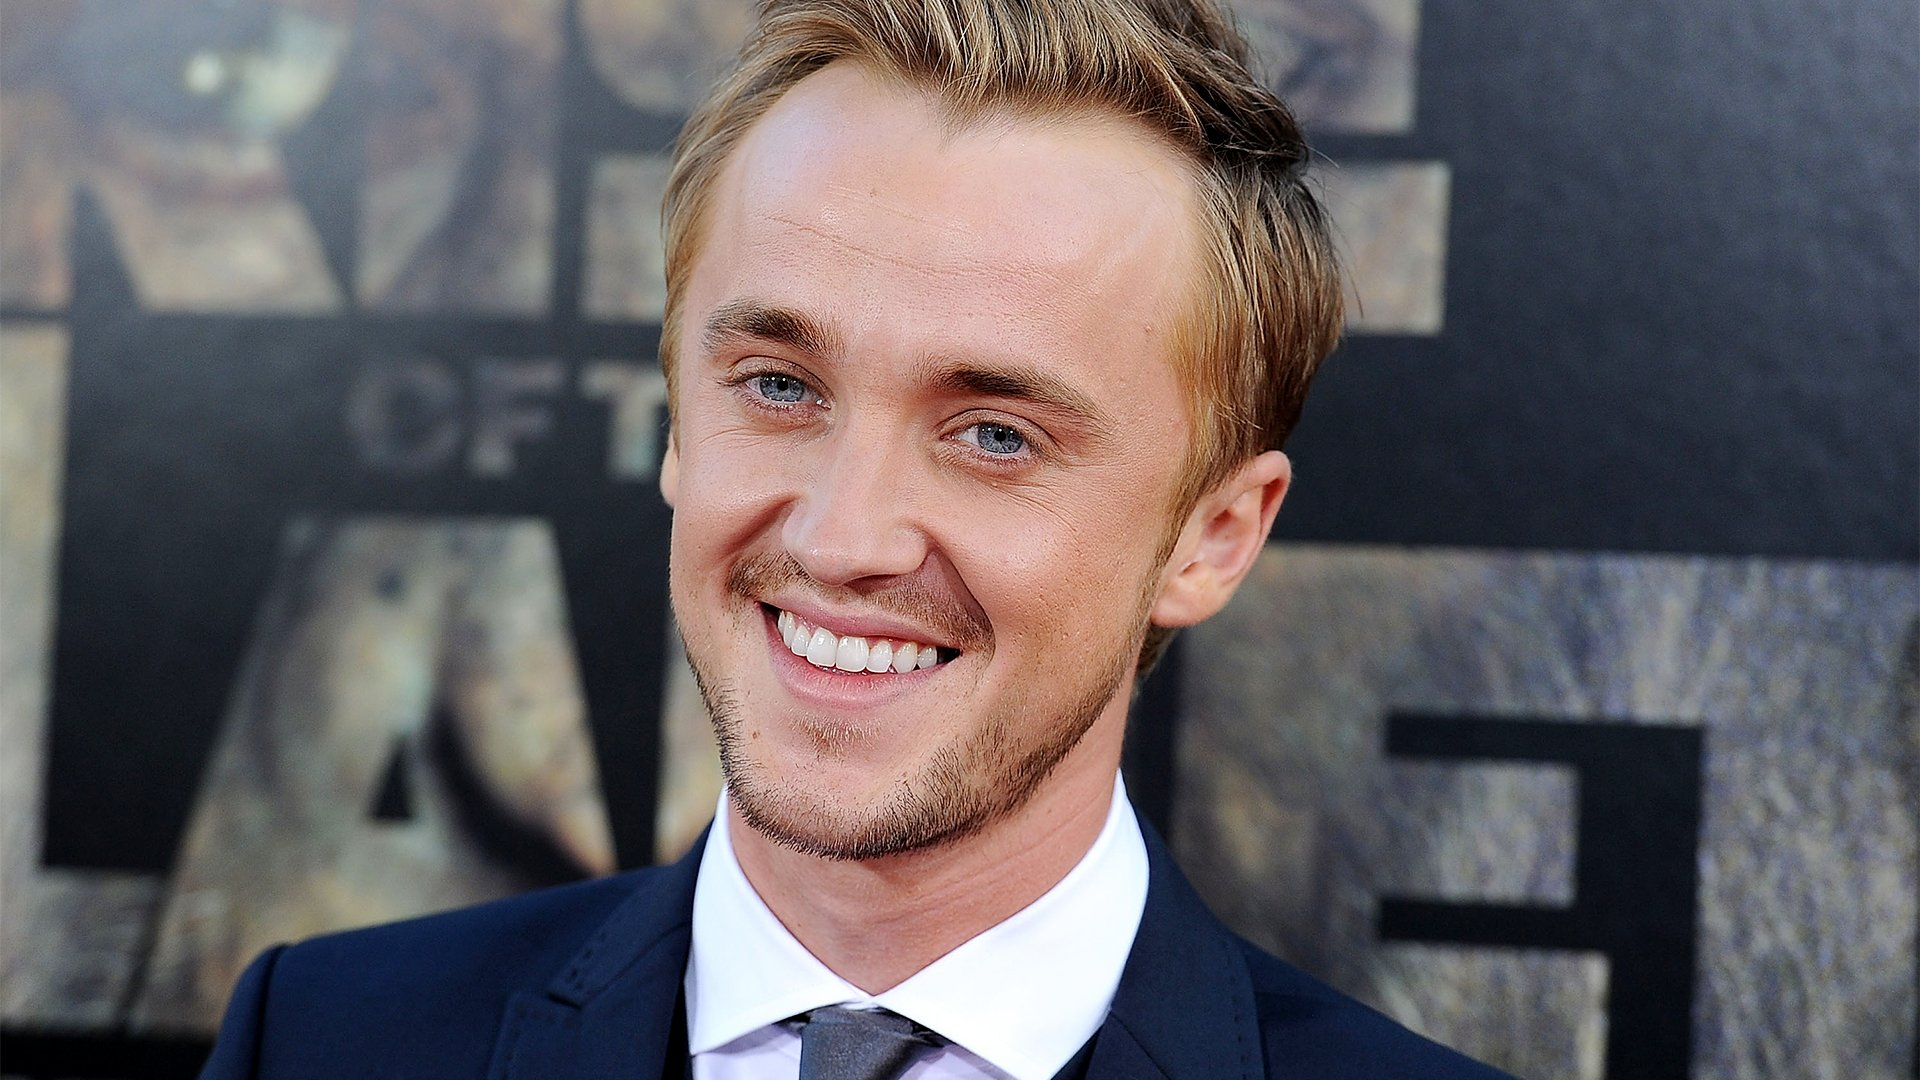 Tom Felton Reveals Role His Grandpa Had In Harry Potter And The Sorceror's Stone - We Got This Covered